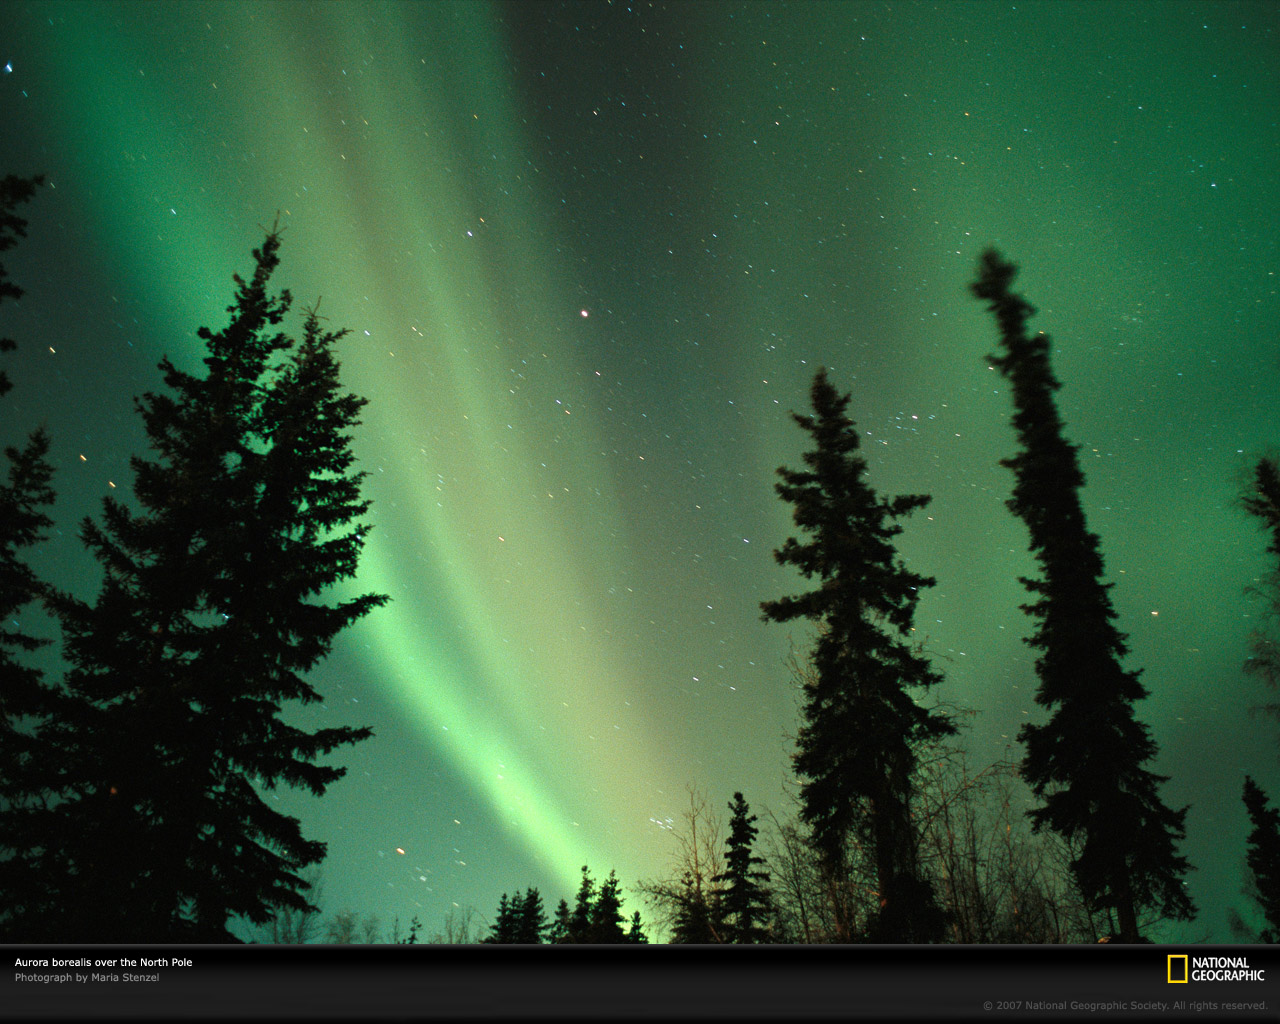 http://3.bp.blogspot.com/-U1HayO5f3Qw/T8C6c6Z1_gI/AAAAAAAAAb4/5N47obcXExU/s1600/north_pole_aurora_borealis_xl_high_resolution_desktop_1280x1024_wallpaper-220882.jpg